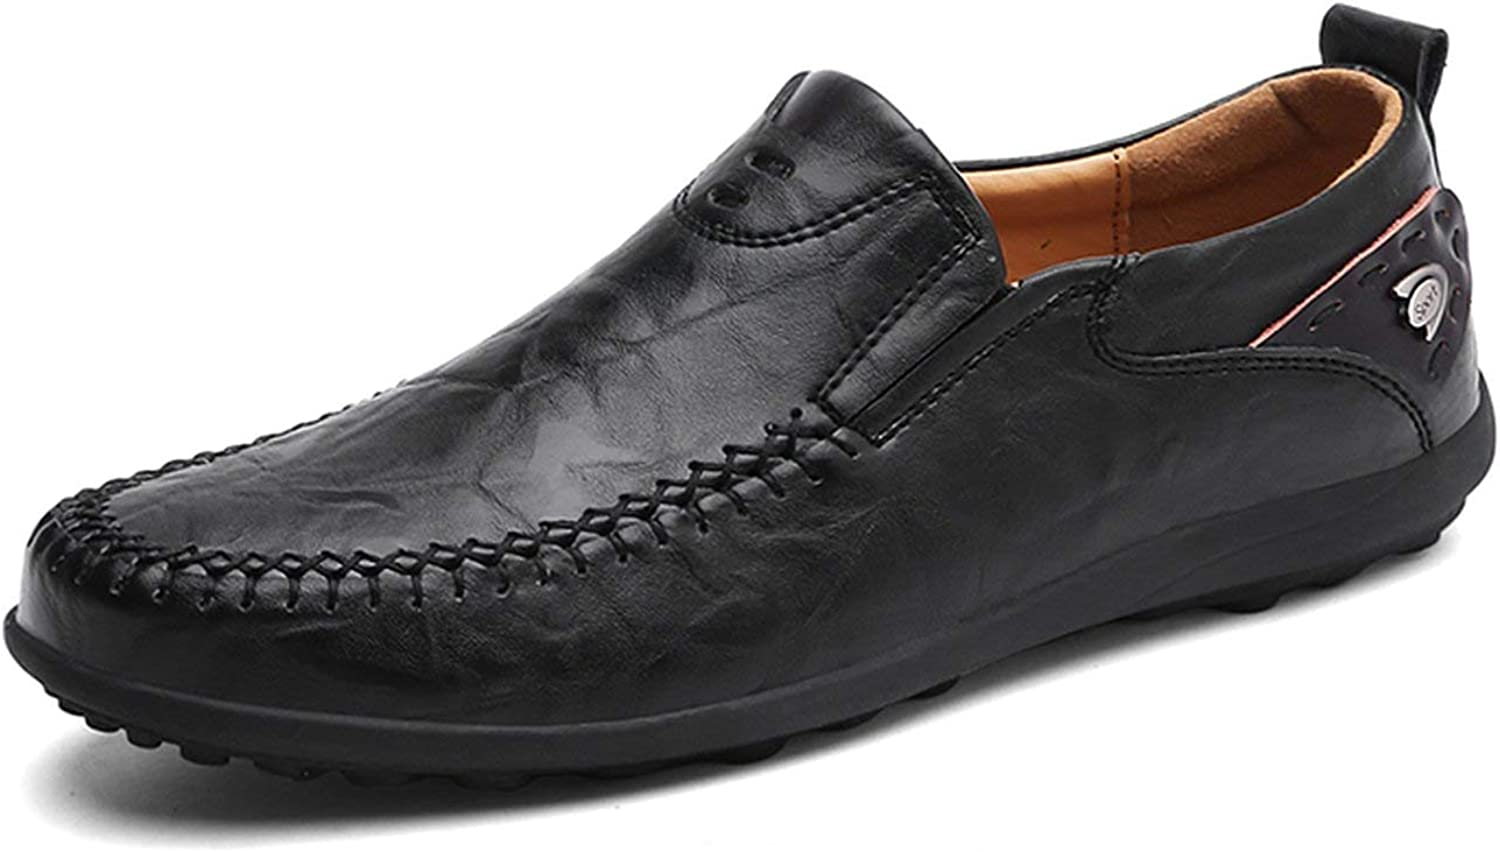 OH WHY Genuine Leather Men Casual shoes Moccasins Winter Slip on Formal shoes